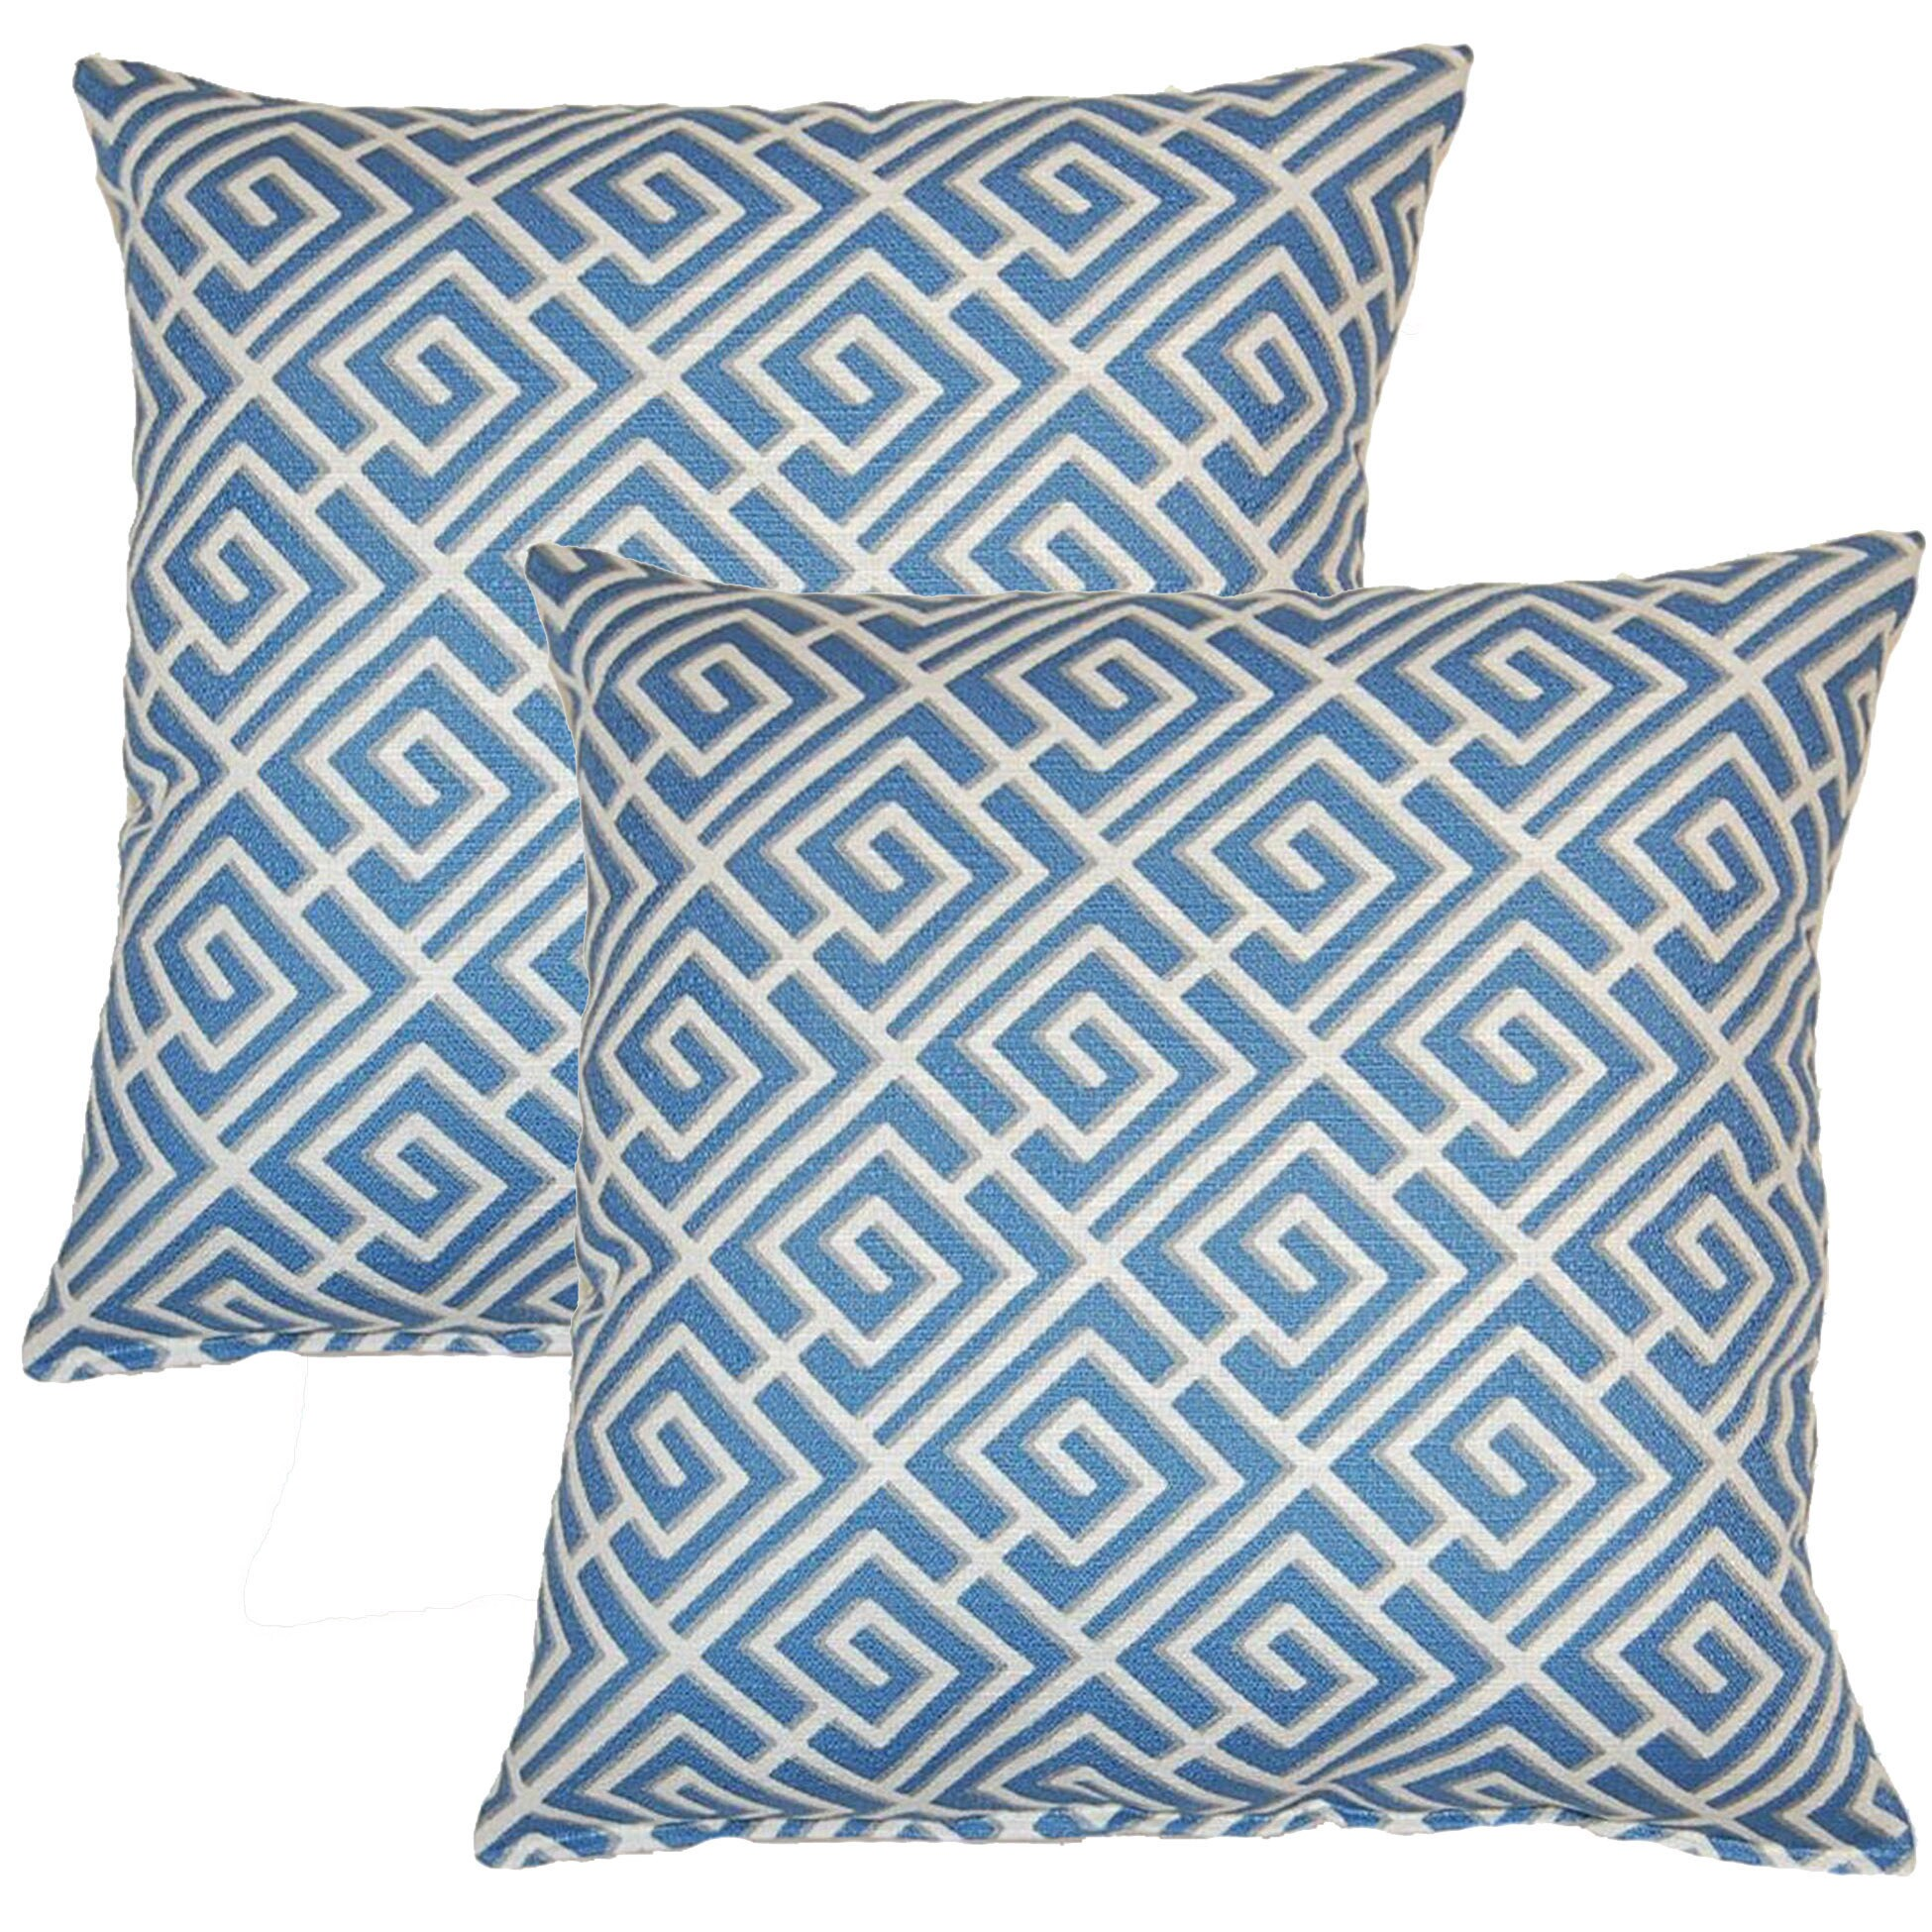 Quadrotto Slate 17-inch Throw Pillow (Set of 2) (Throw Pillow)